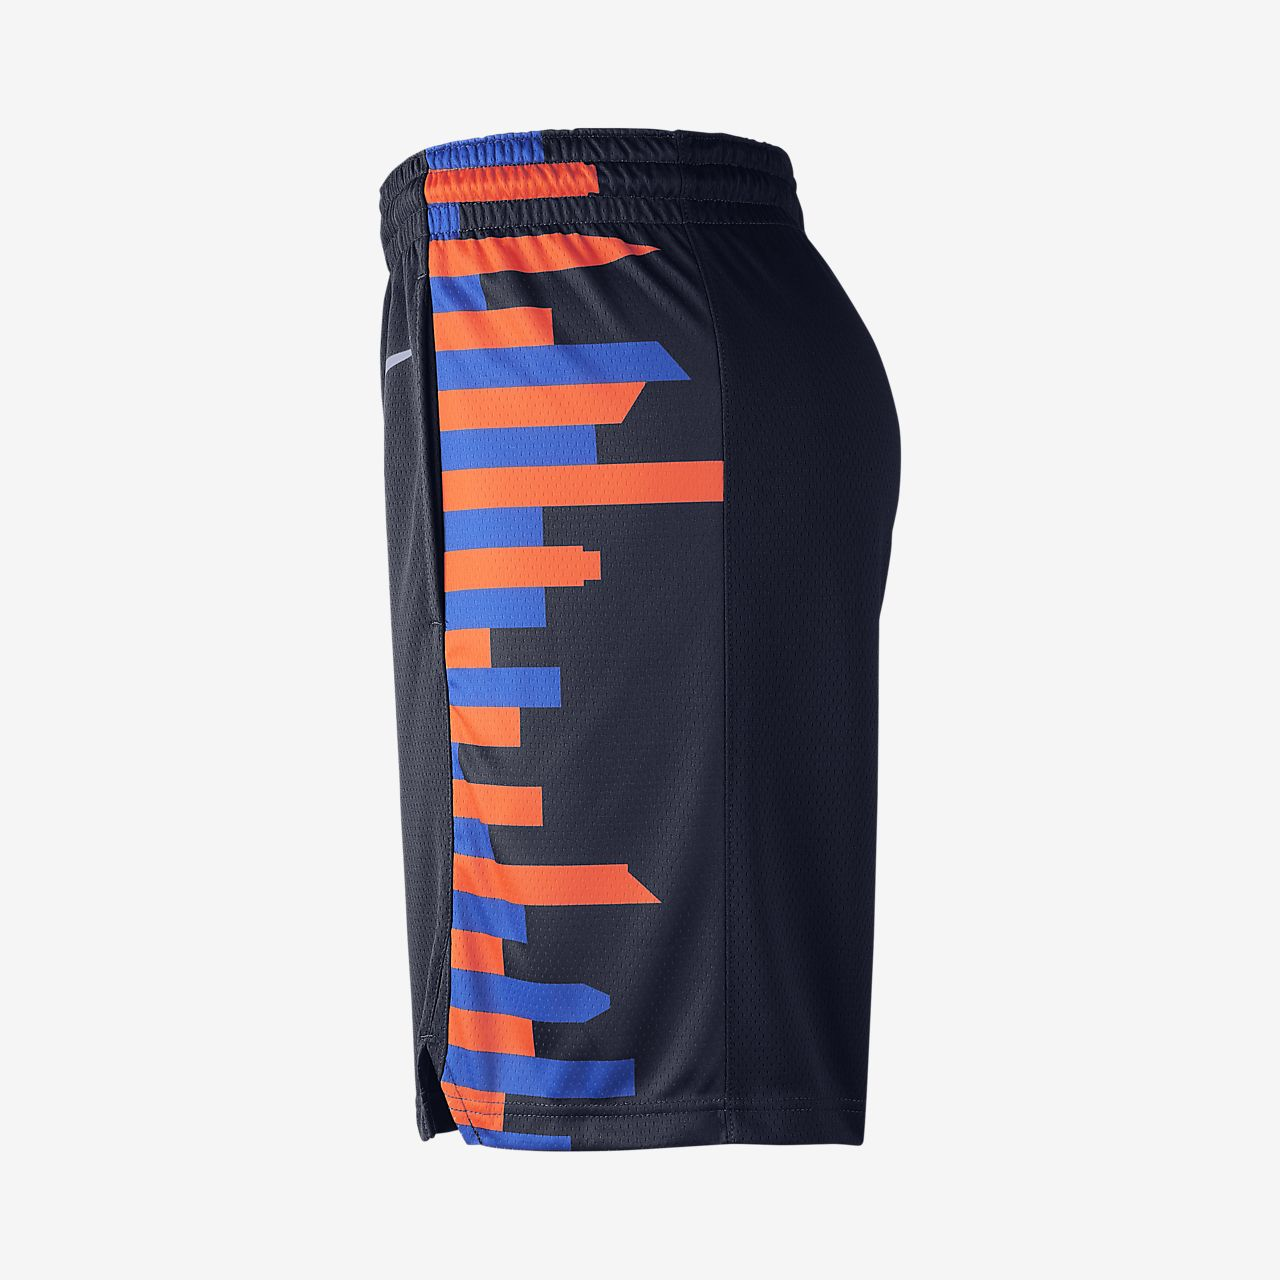 15f713ce333ec New York Knicks City Edition Swingman Men s Nike NBA Shorts. Nike.com